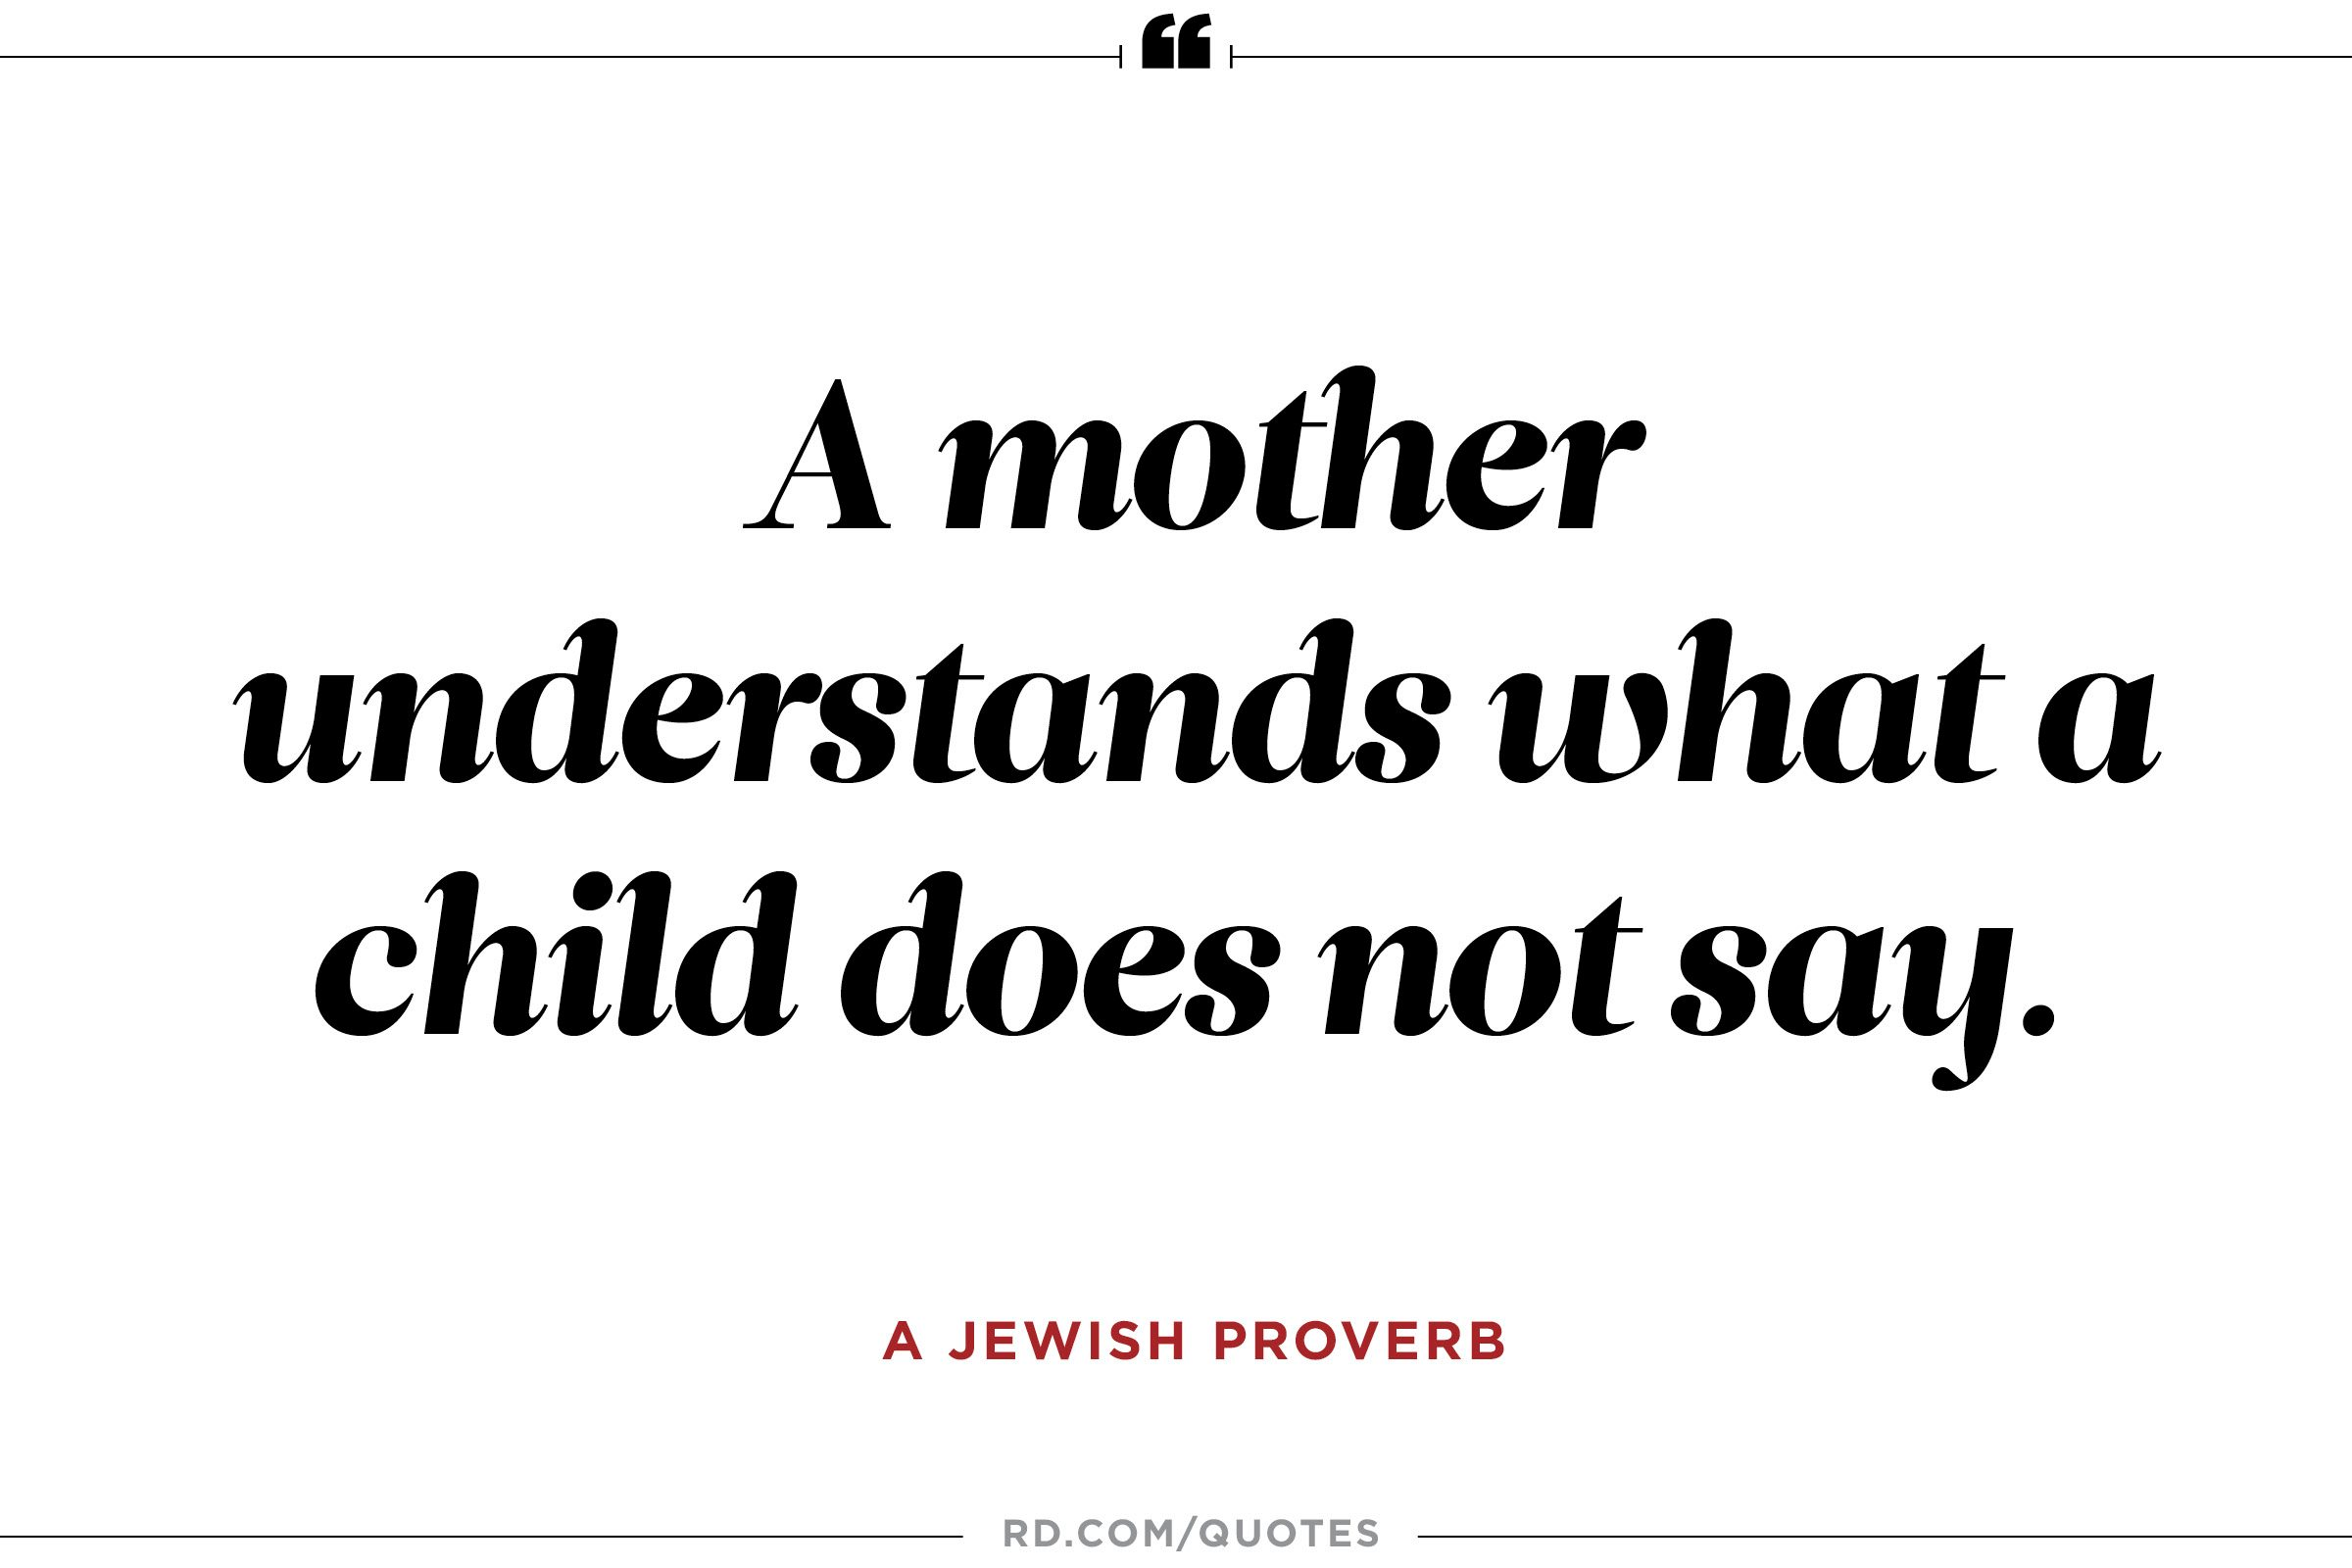 Mothers Love Quotes Beauteous 11 Quotes About Mothers That'll Make You Call Yours  Reader's Digest